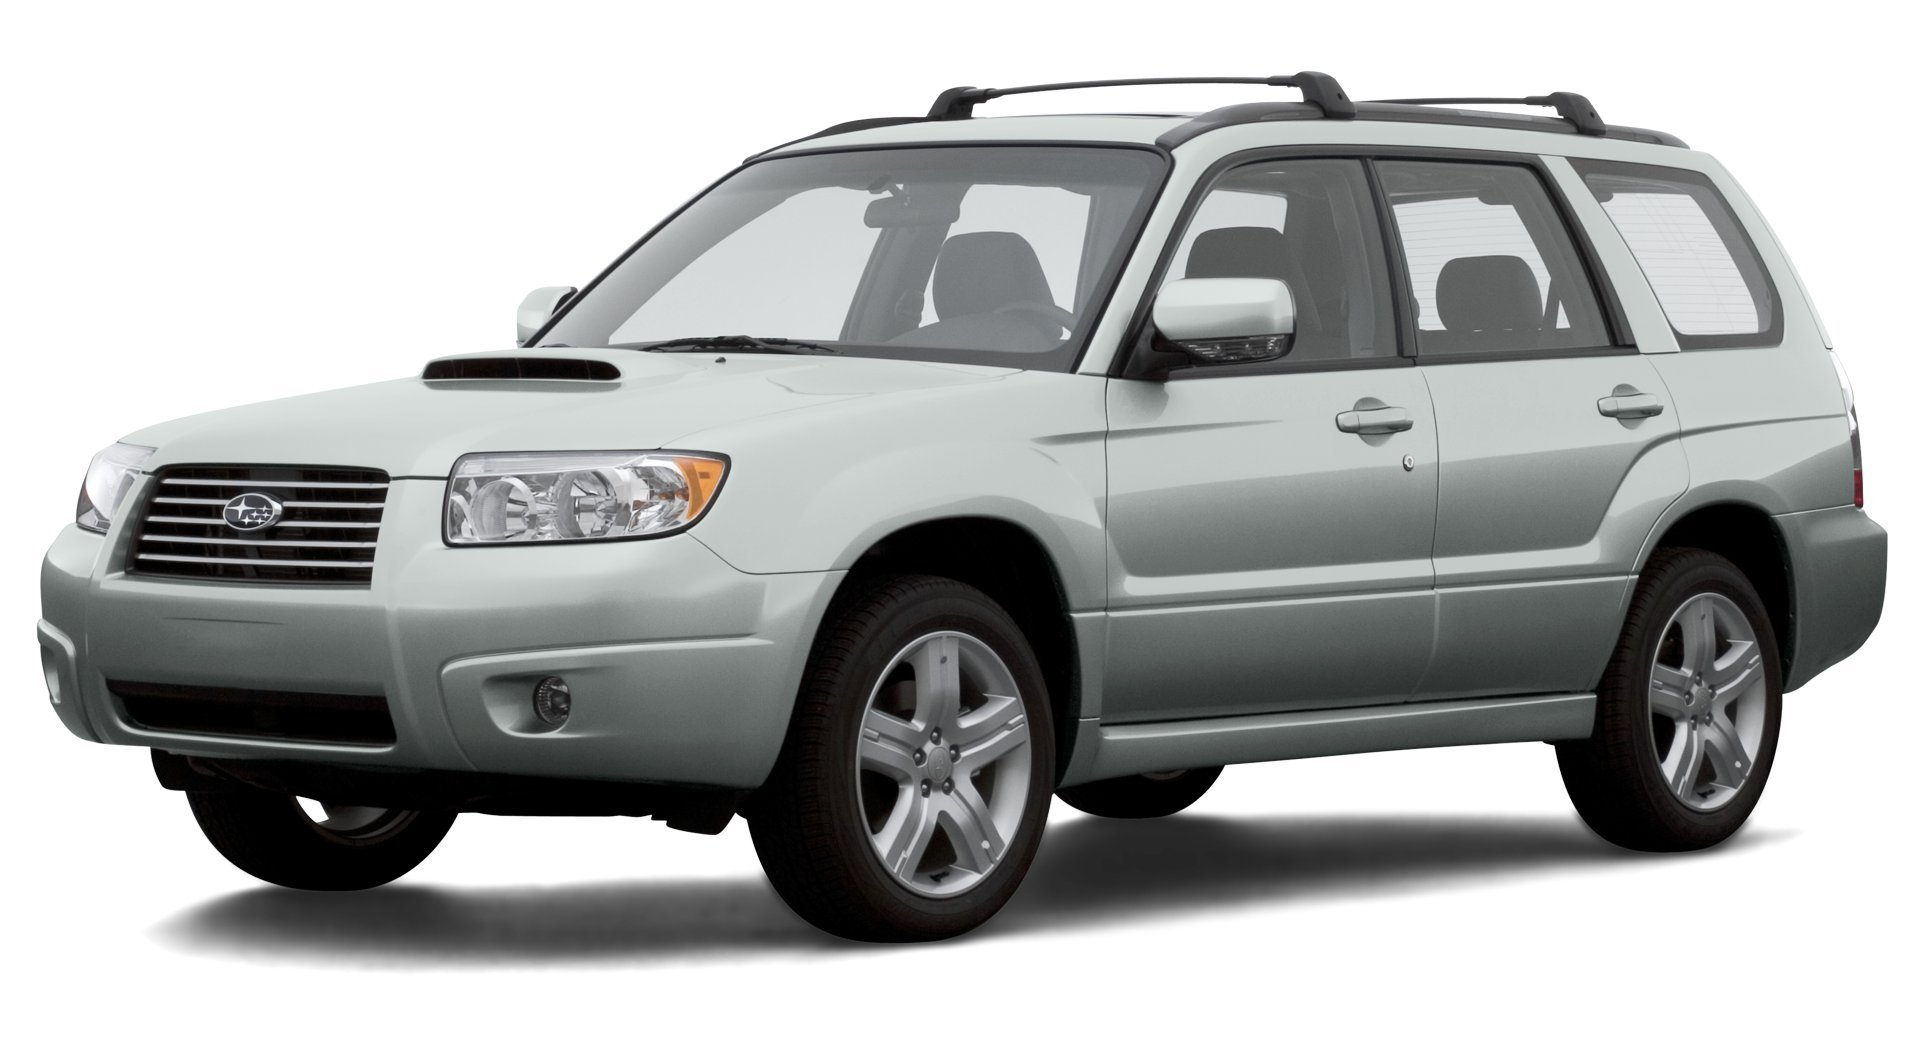 ... 2007 Subaru Forester XT Limited, All Wheel Drive 4-Door 4-Cylinder Turbo ...